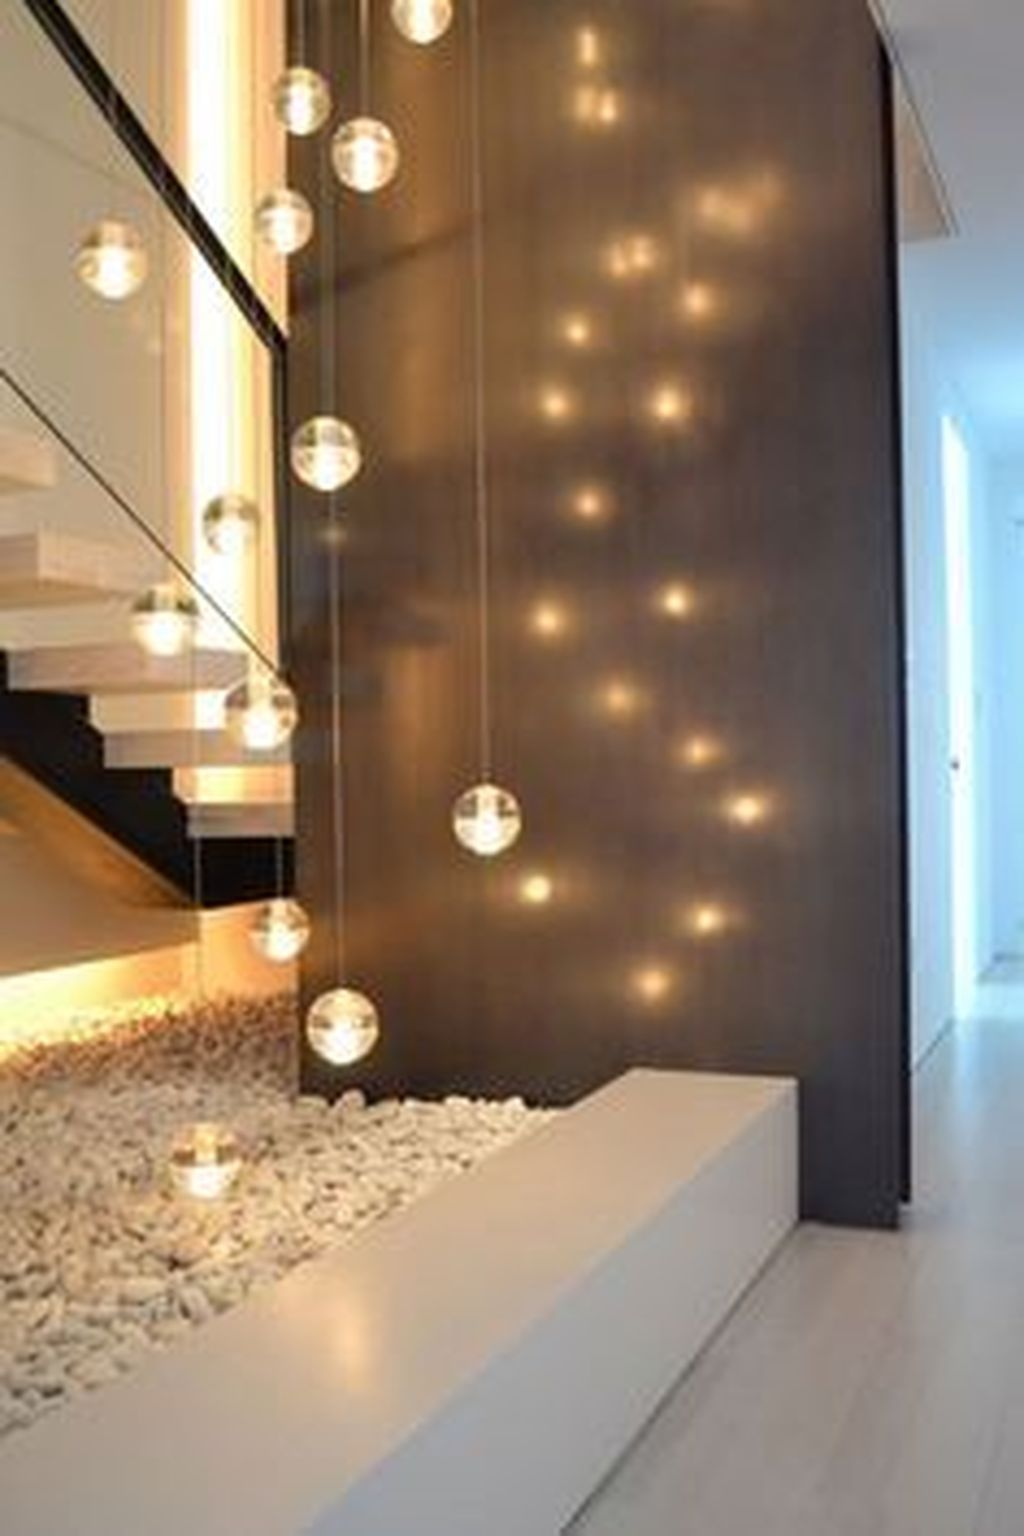 47 Decorative Lighting Design Minimalist Home Home Lighting